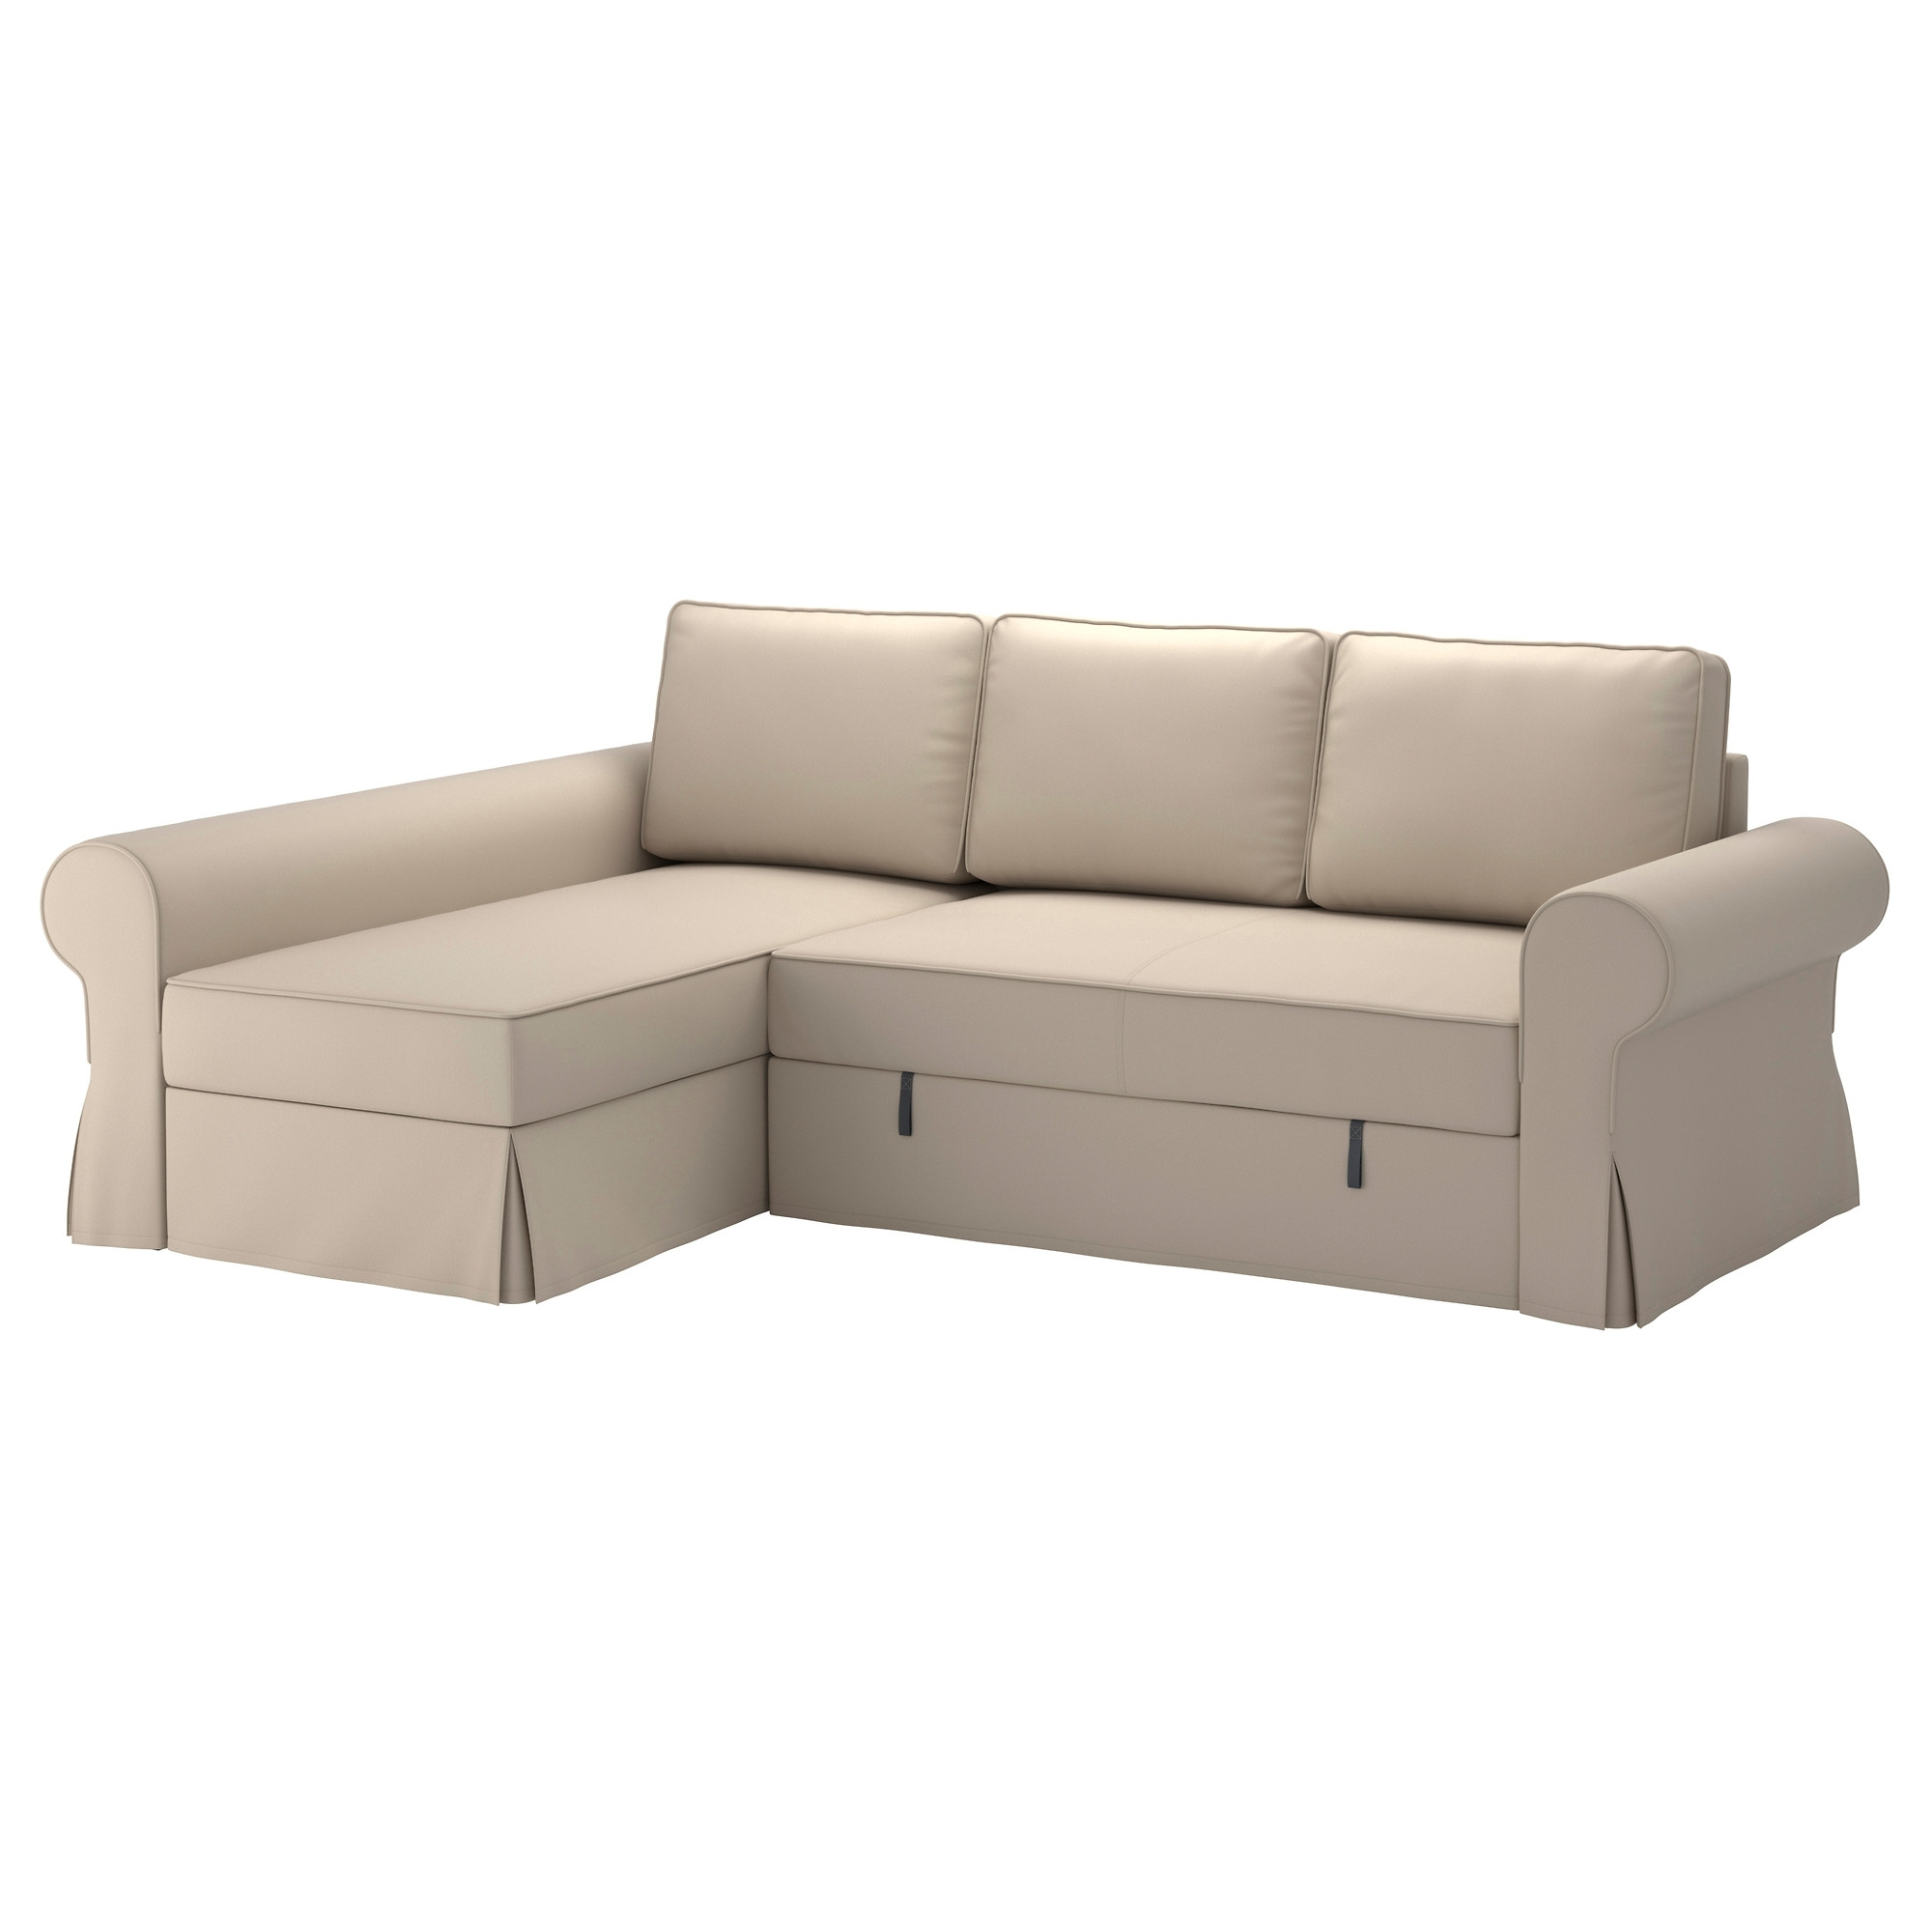 Backabro Cover Sofa Bed With Chaise Longue Ramna Beige – Ikea Throughout Ikea Sectional Sofa Beds (View 8 of 10)